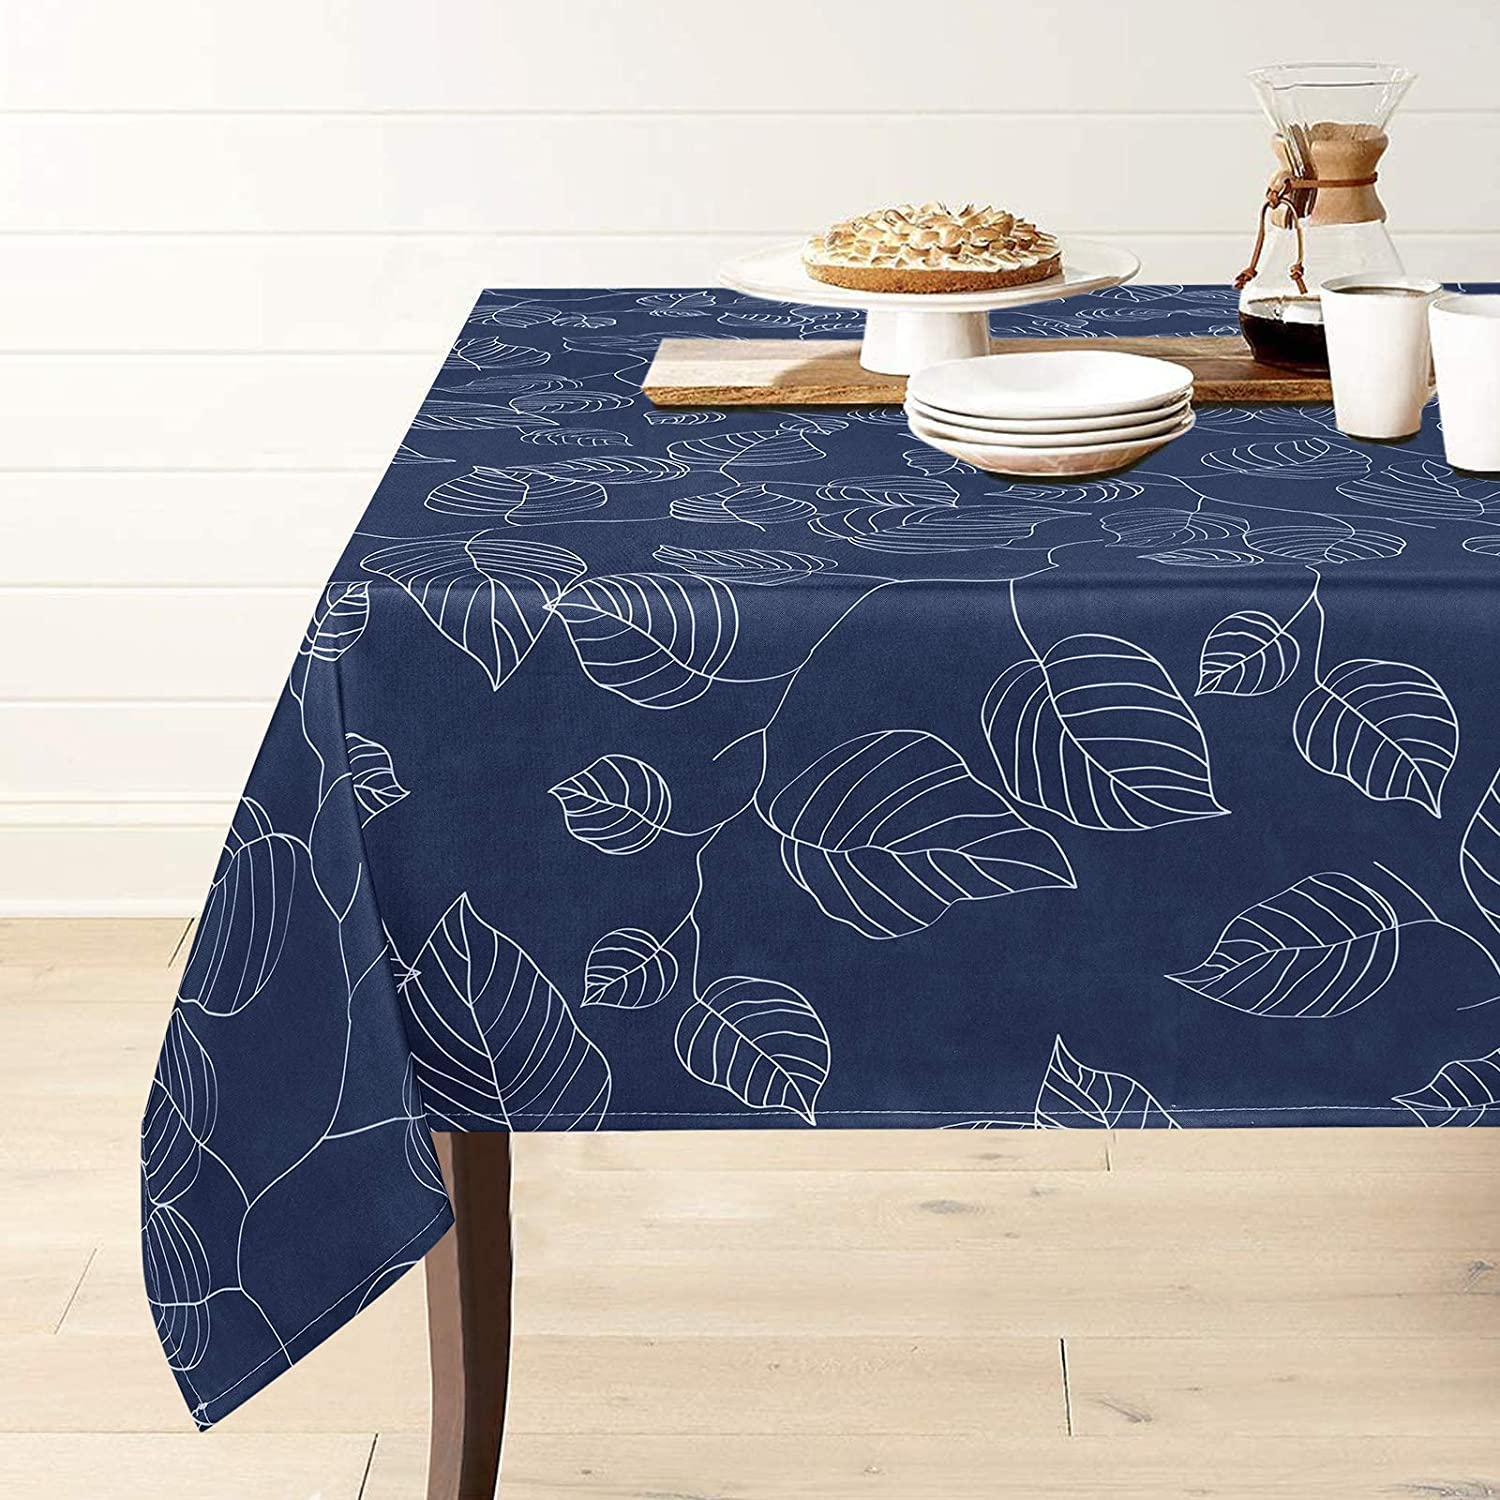 Blue Tablecloth, Leaf Print Table Cloth, Waterproof Wrinkle Free Tablecloth for Kitchen Dining Room Picnic Decoration, Spillproof Tablecloth Square 55 x 55 inch